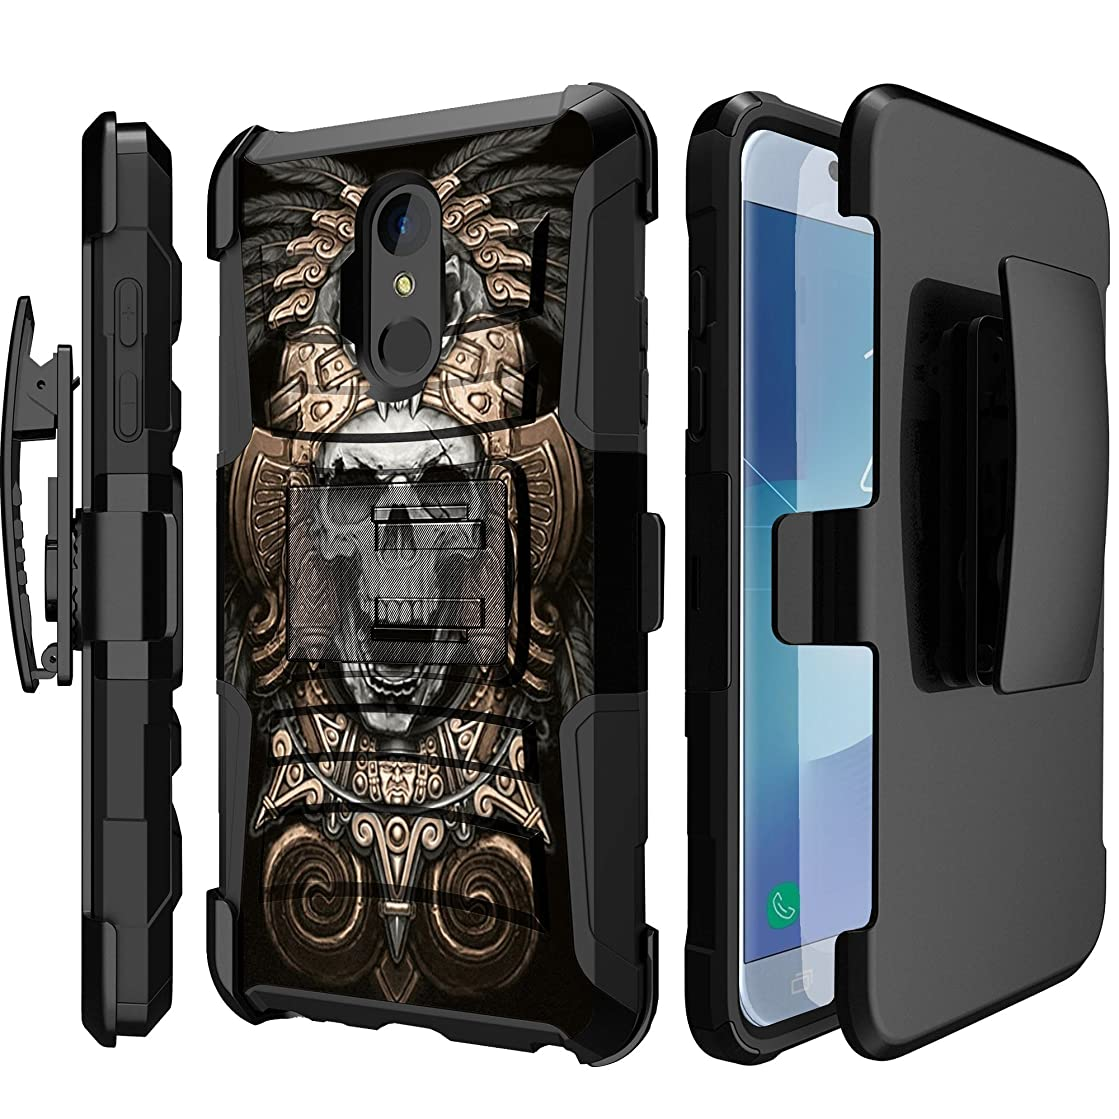 MINITURTLE Case for Girls Compatible with LG Stylo 4 / LG Q Stylus (2018 Release)(Cricket) Hard Rugged Shell, Silicone Bumper with Kickstand & Holster by MINITURTLE - Tribal Aztec Skull